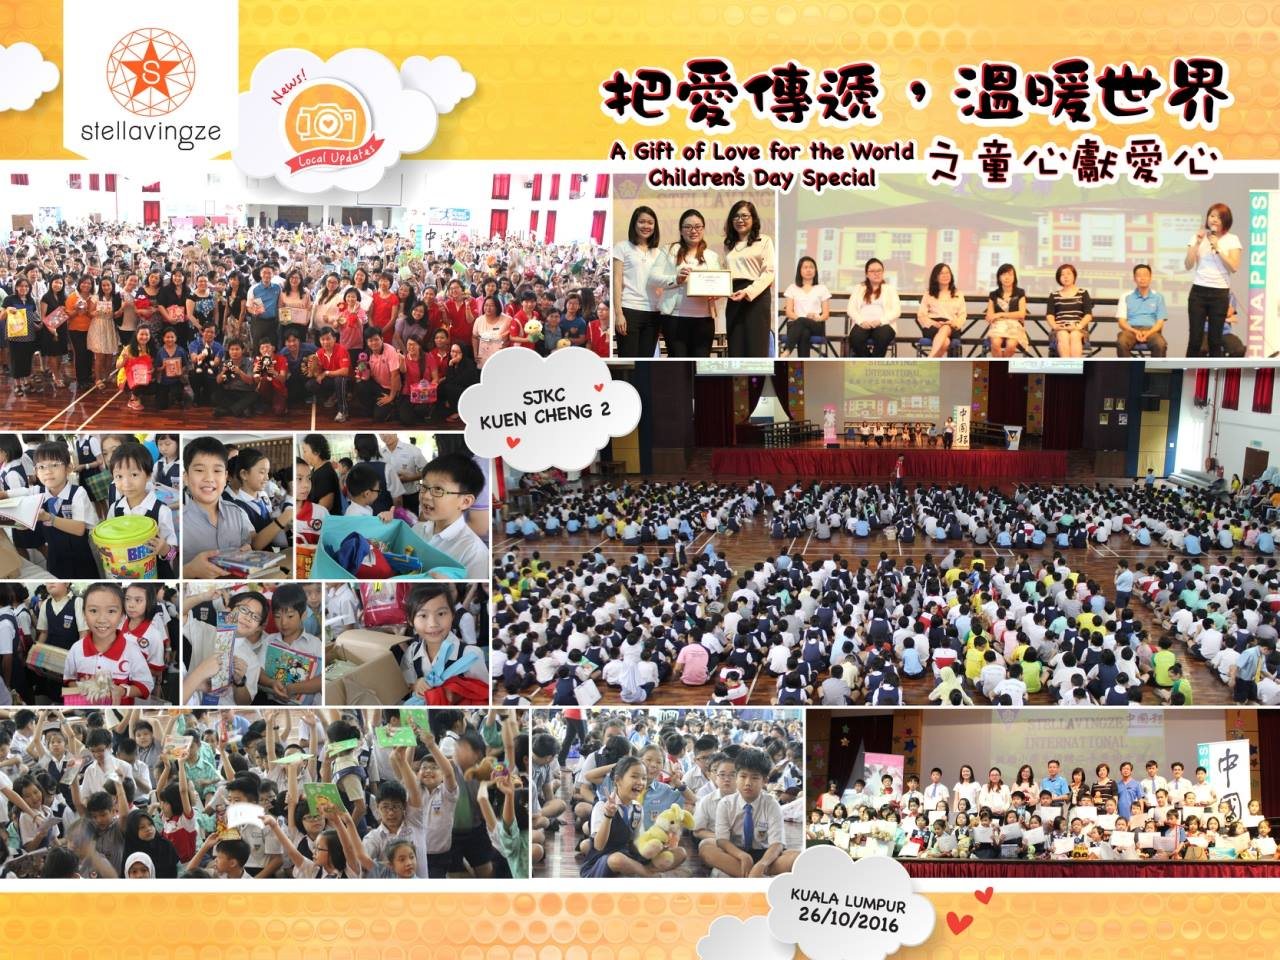 A Gift of Love for the World Children Day Special . SJKC KUEN CHENG 2 |    On 26/10, Stellavingze Star Of Hope is finally here in SJKC Kuen Cheng 2, Kuala Lumpur! Sharing the formula of Happiness with more than 1000 students on [Add Love, Minus Hate, Multiply Gratitude and Divide Bad words], with hopes in heart to nurture children in the culture of giving and not taking everything for granted. Parents and teachers' support in this campaign plays an important roles in building children's giving habit. We hope every child can bring on the giving spirit to society and share some love and care to those in need, making the world a better place to live! Many thanks for Headmaster and teachers of SJKC Kuen Cheng 2 in making this campaign a big success!   Thank you to Chinapress team for the news coverage, it will spread the awareness of giving culture to the society and community!    #chinapress     #sjkckuencheng2  #stellavingzeinternational     #starofhope